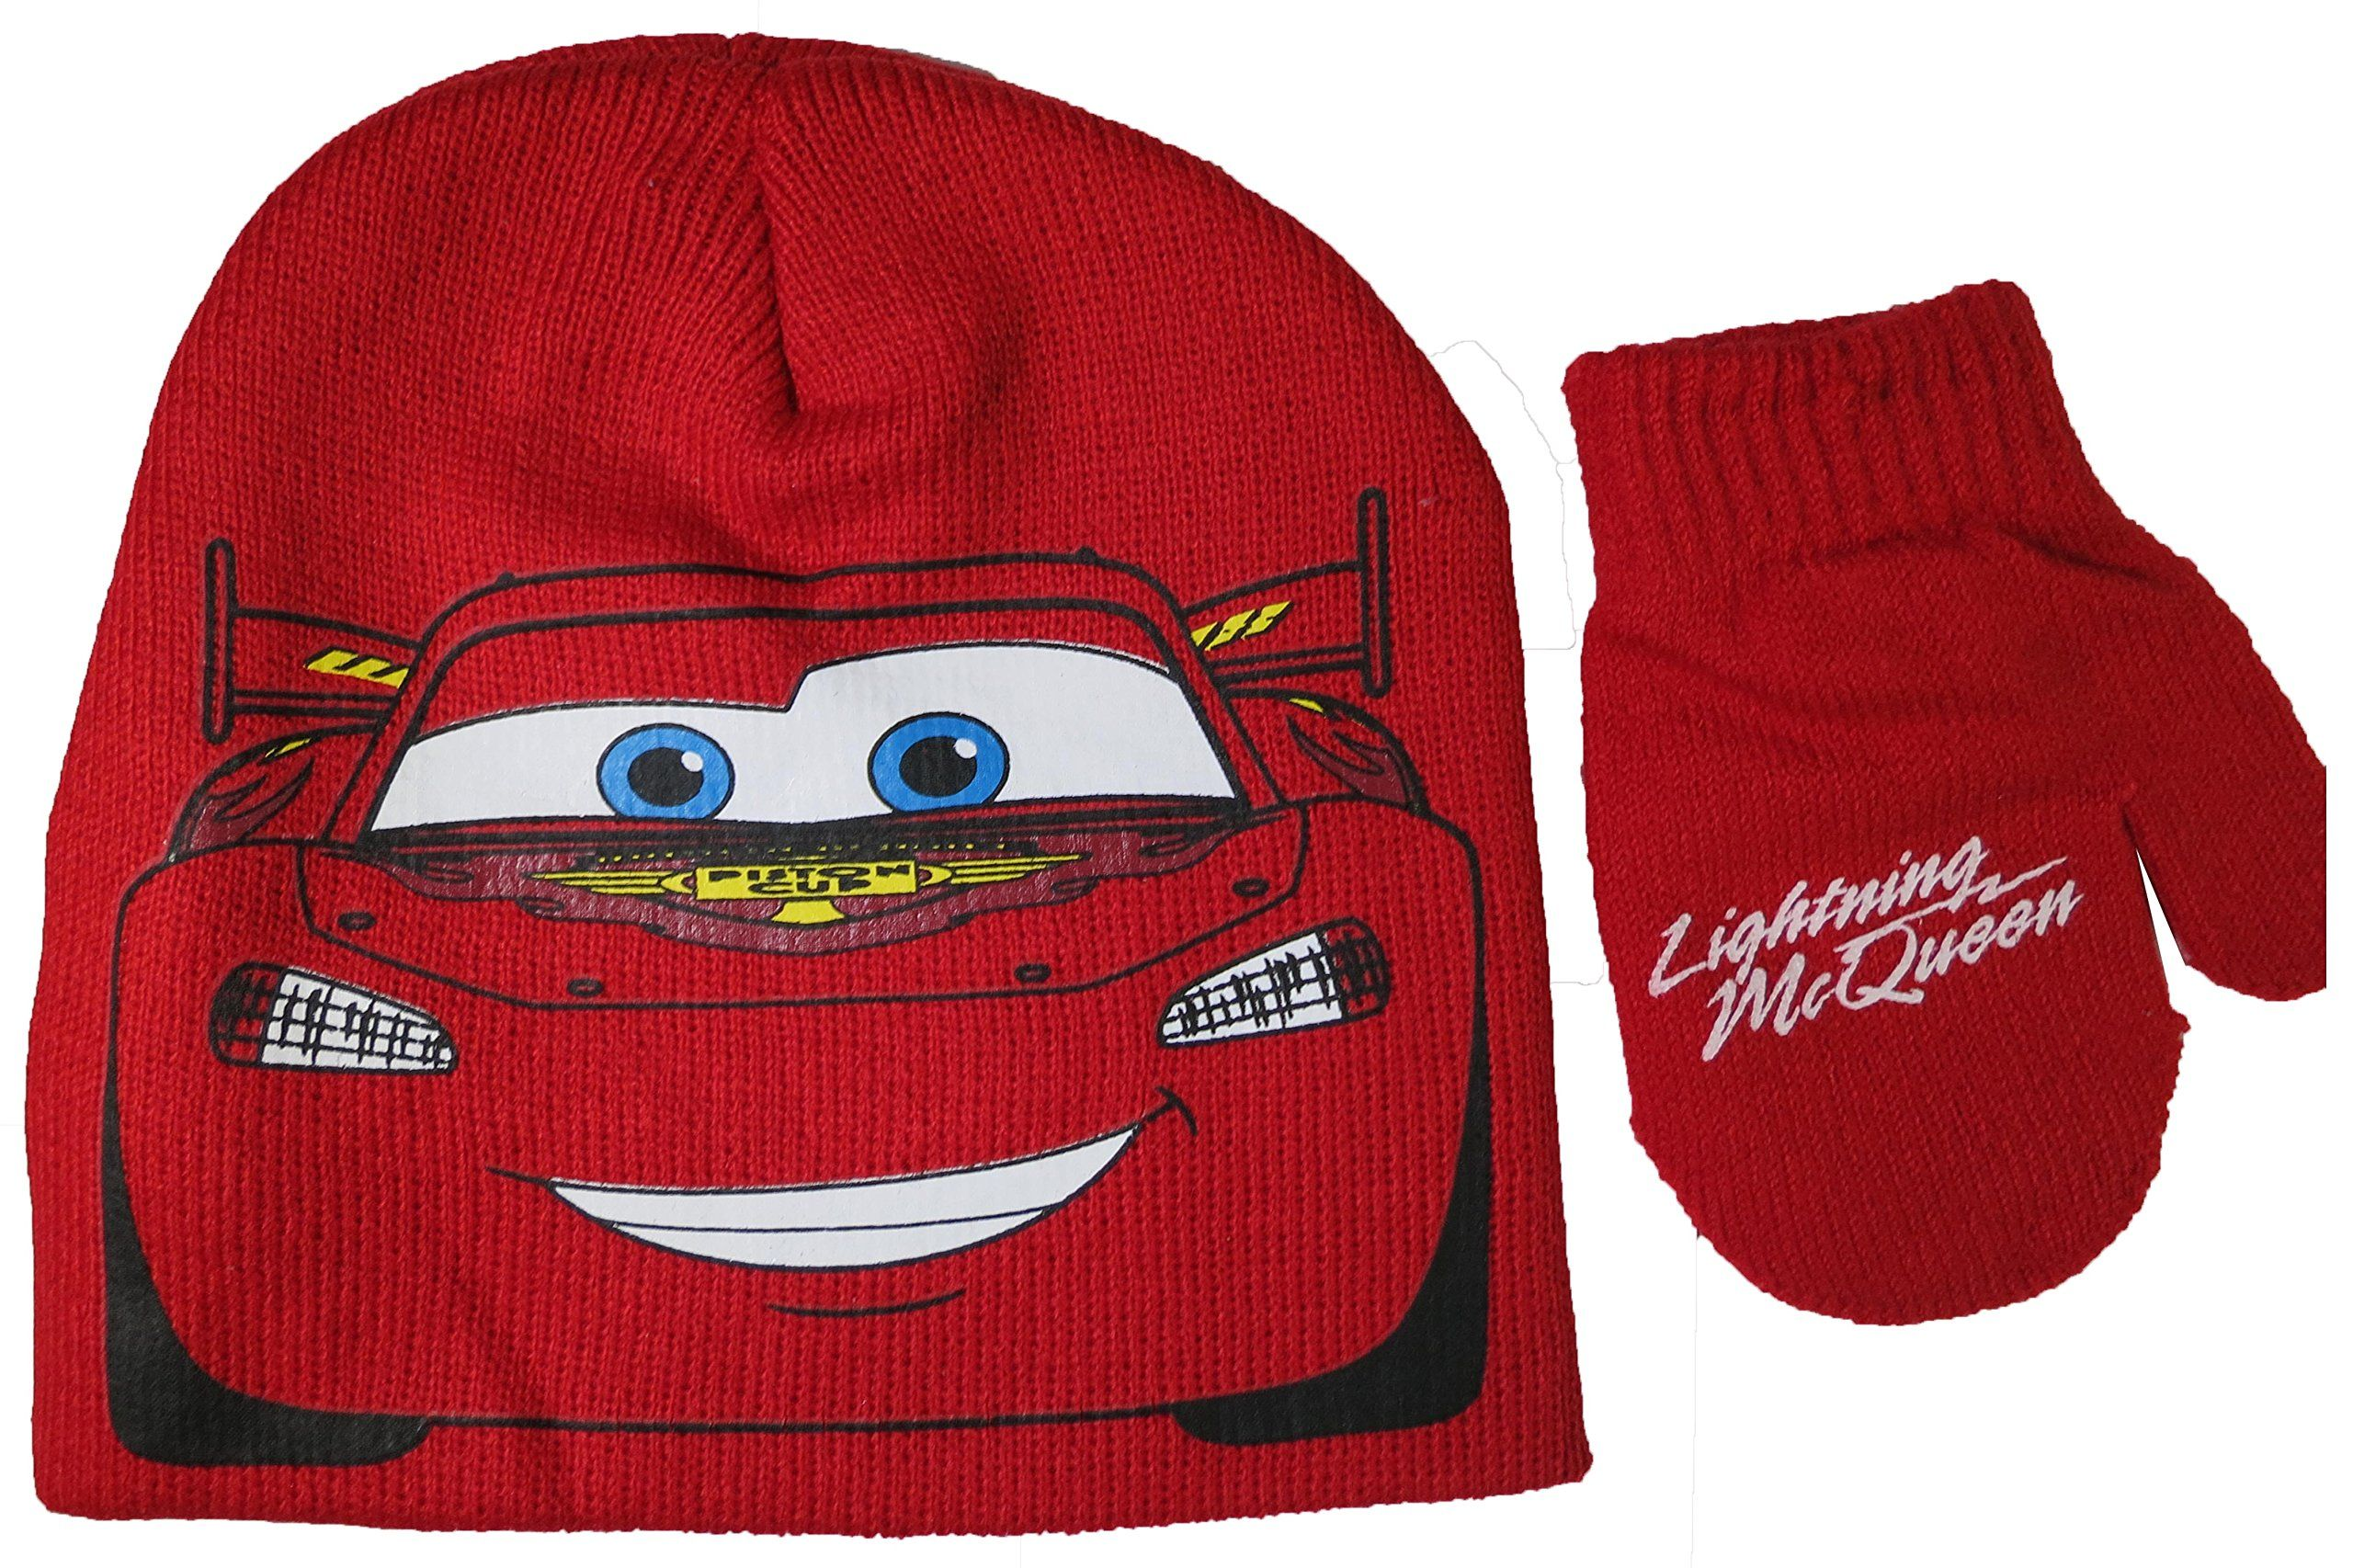 Disney Pixar Cars Lightning McQueen Red Hat And Mitten Set - Toddler ... b1febc5fad16